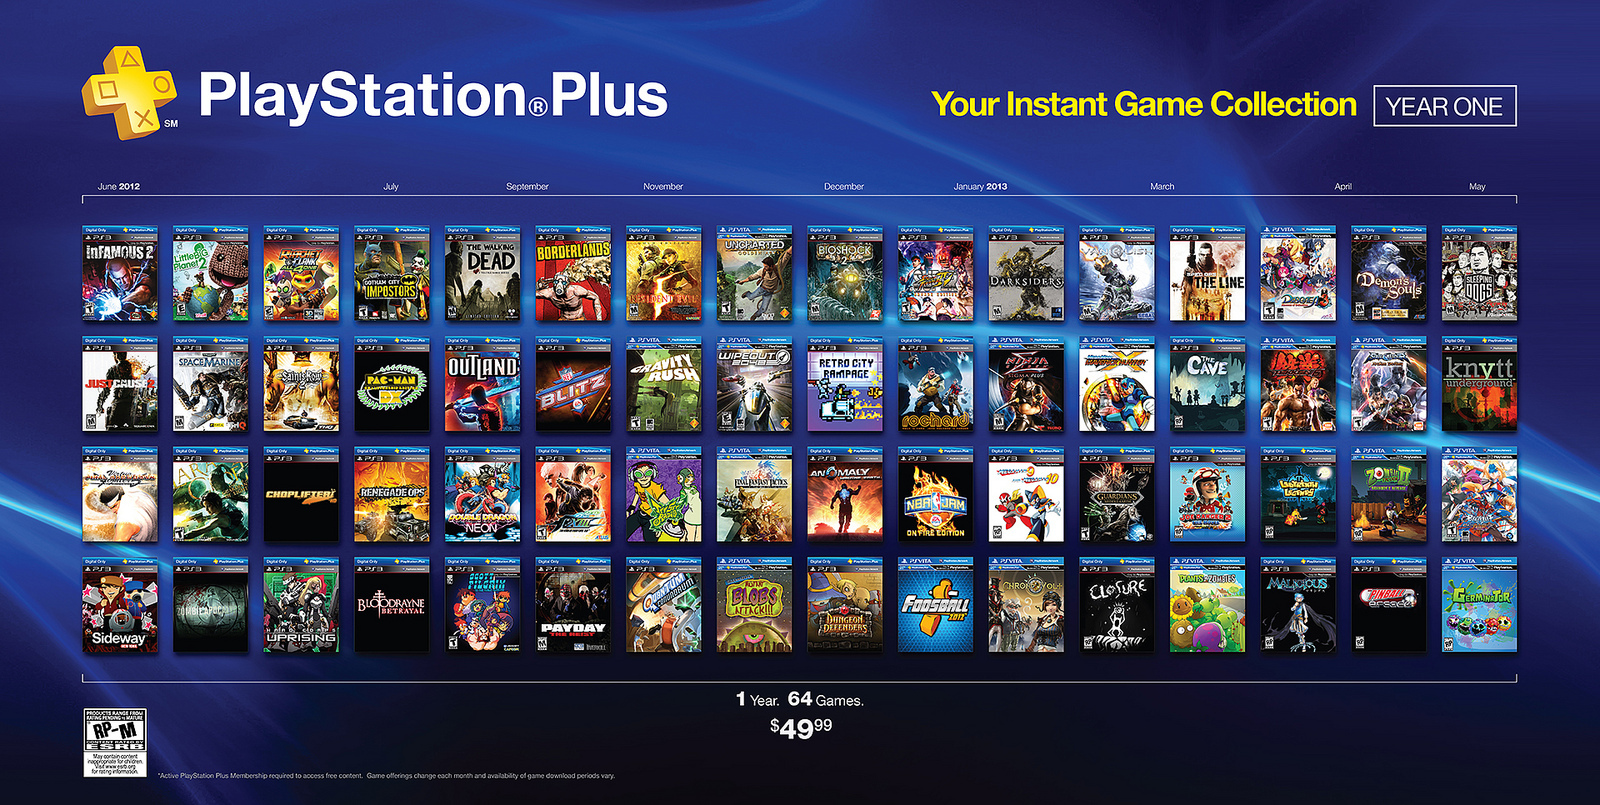 The first year's PS+ offerings: 64 games. The new program will feature 72 games over the course of the year!